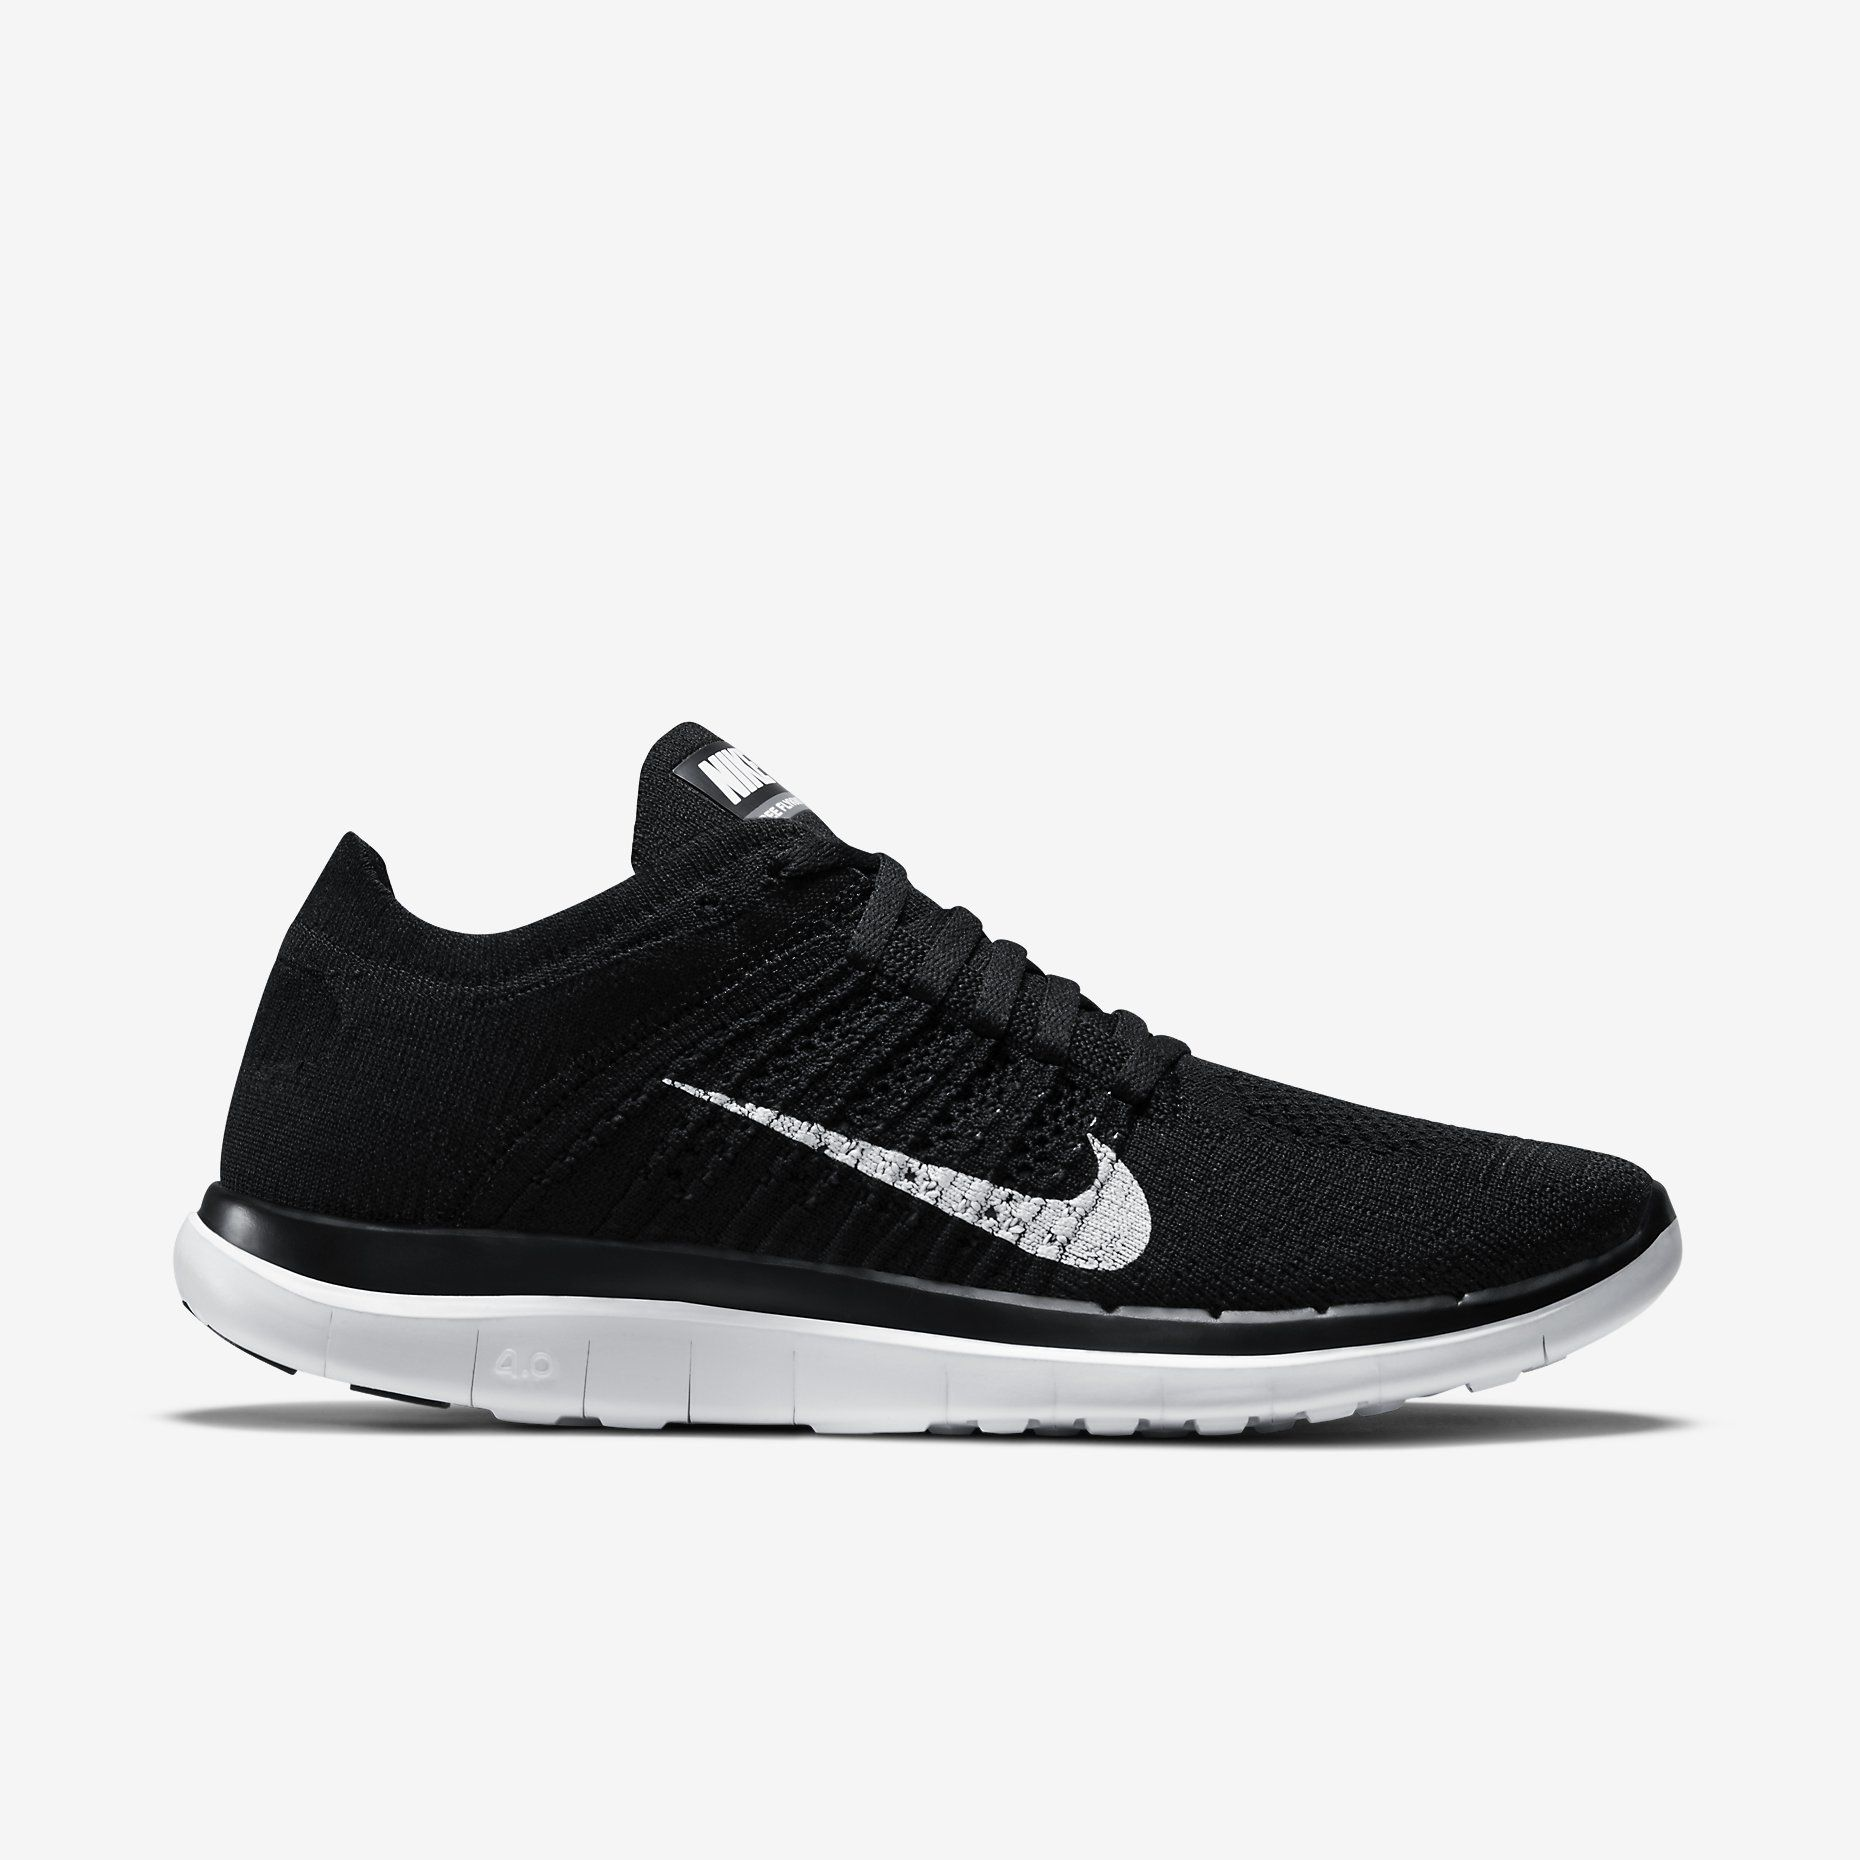 first rate f4a3f 259e8 Nike Free 4.0 Flyknit Women s Running Shoe. Nike Store   Vegan Shoes    Vegan Running Shoes